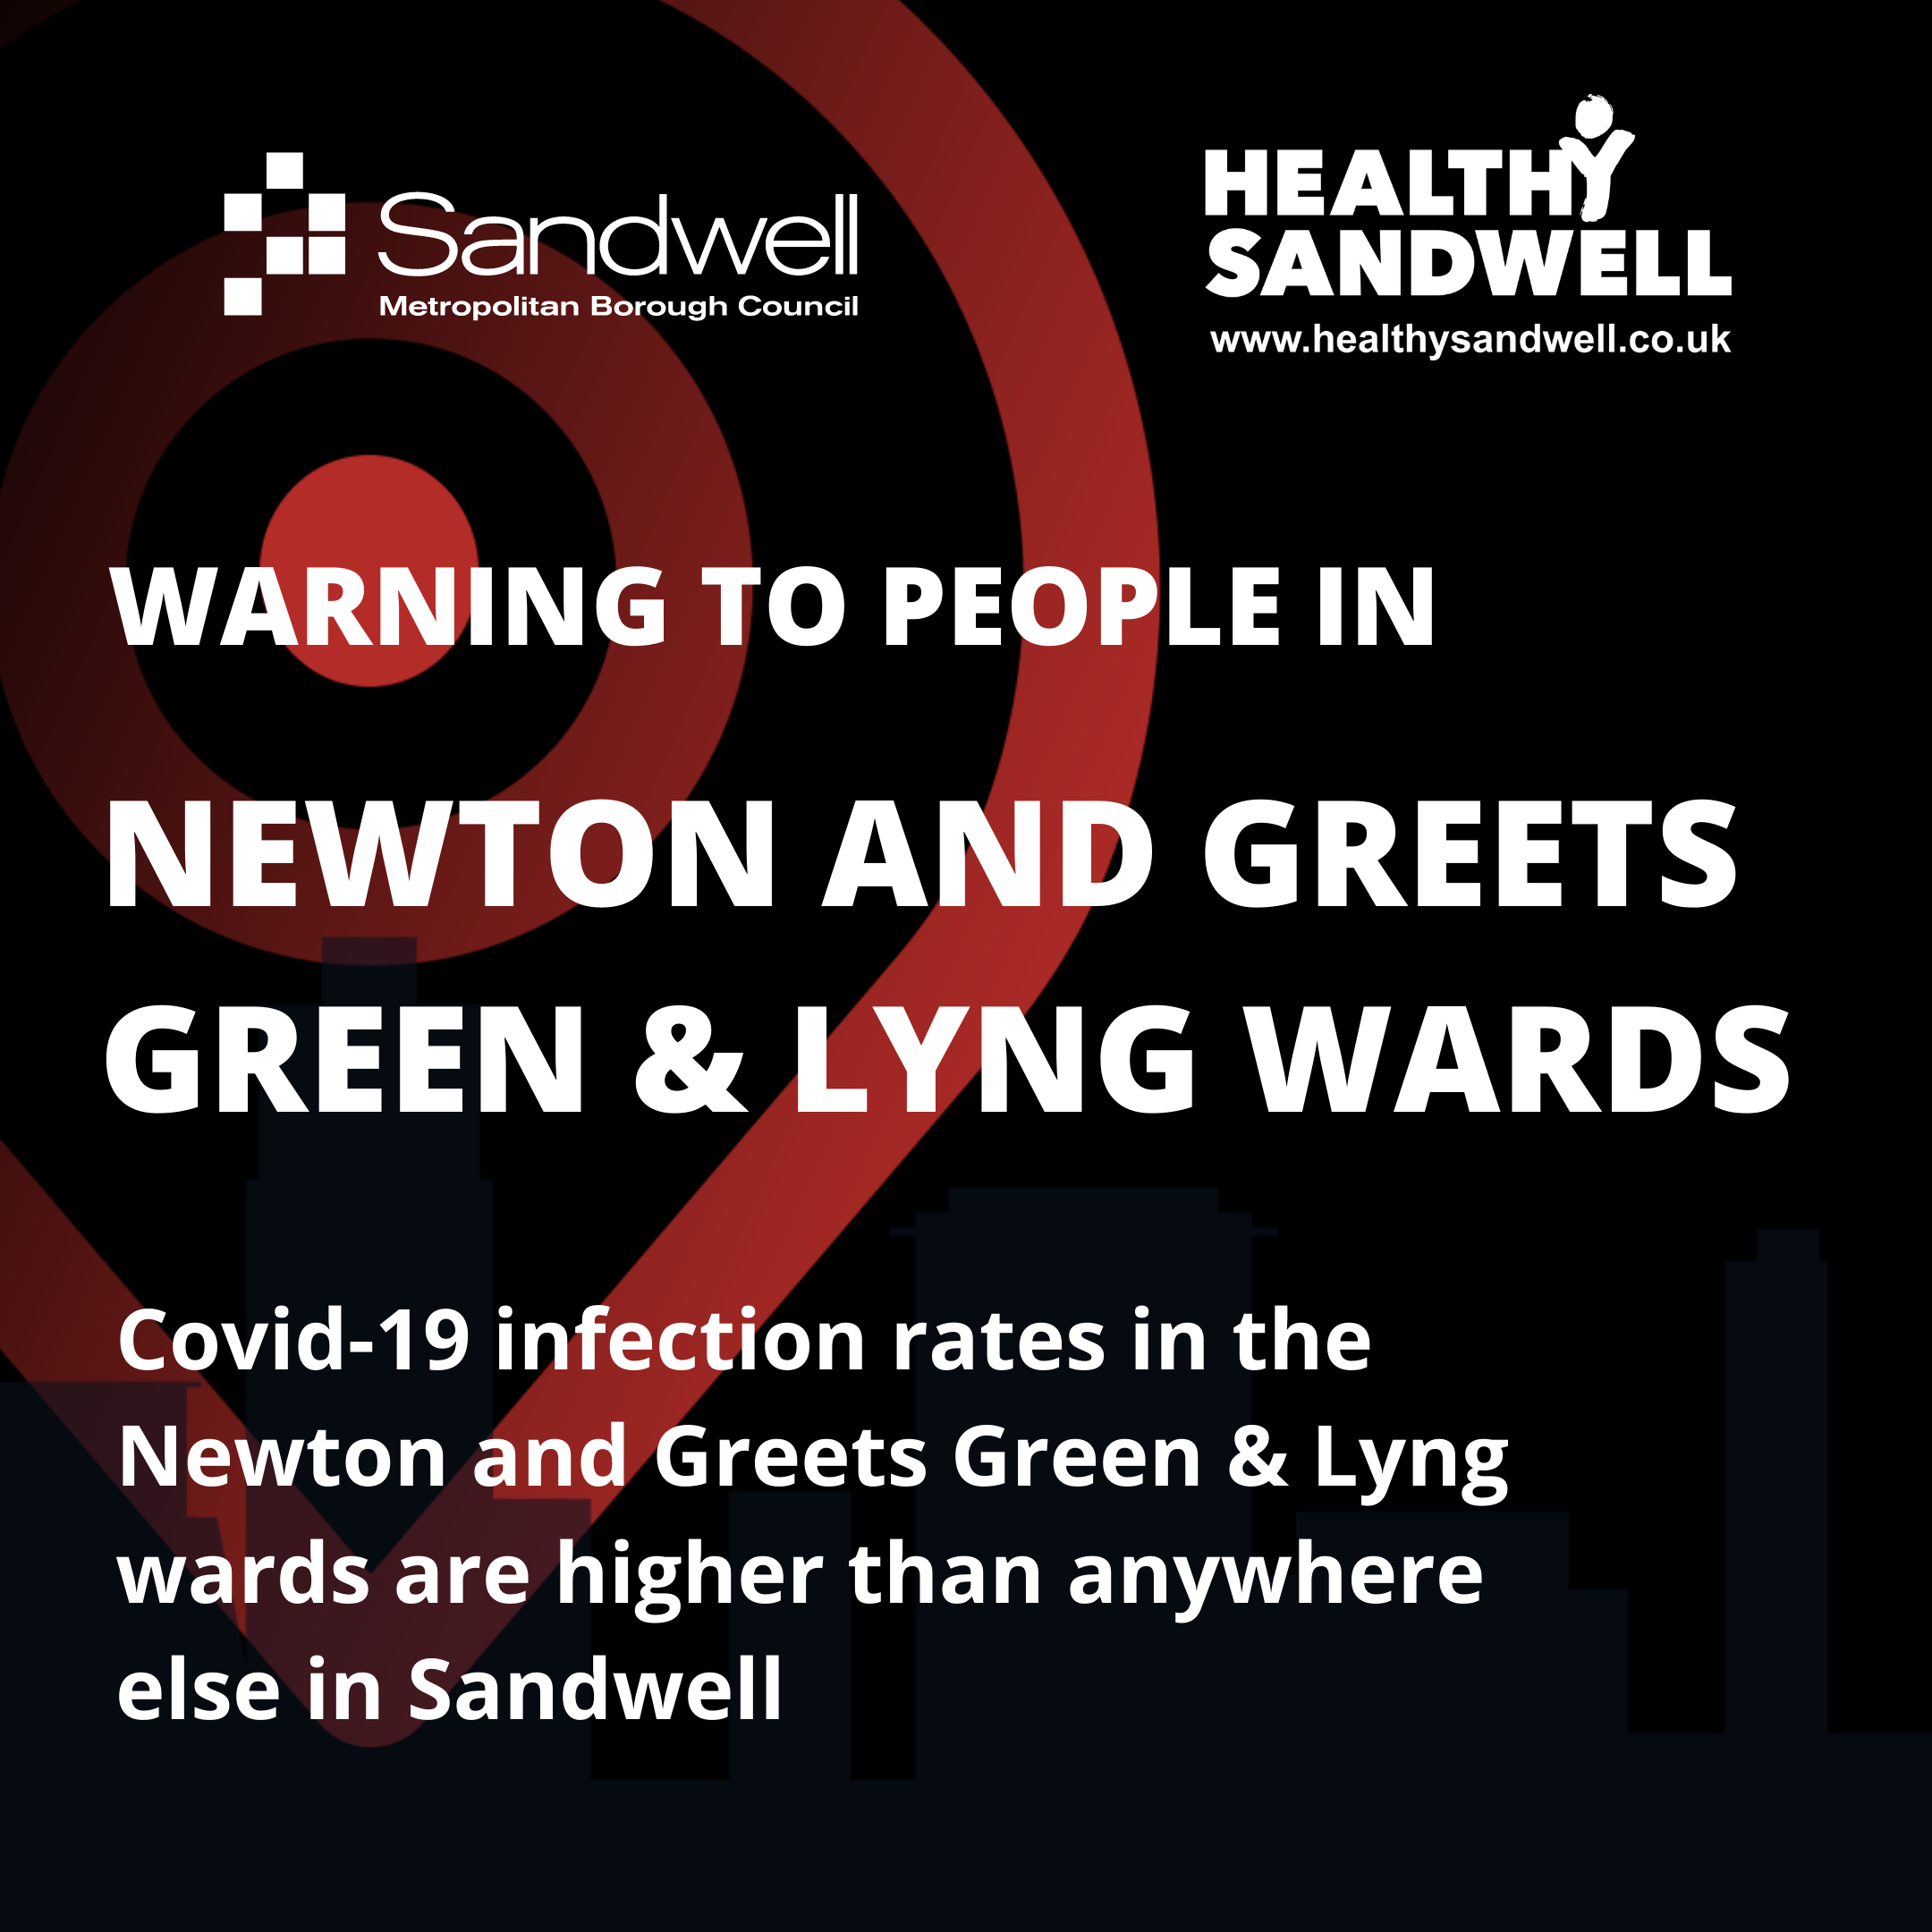 Warning graphic for Newton and Greets Green & Lyng wards